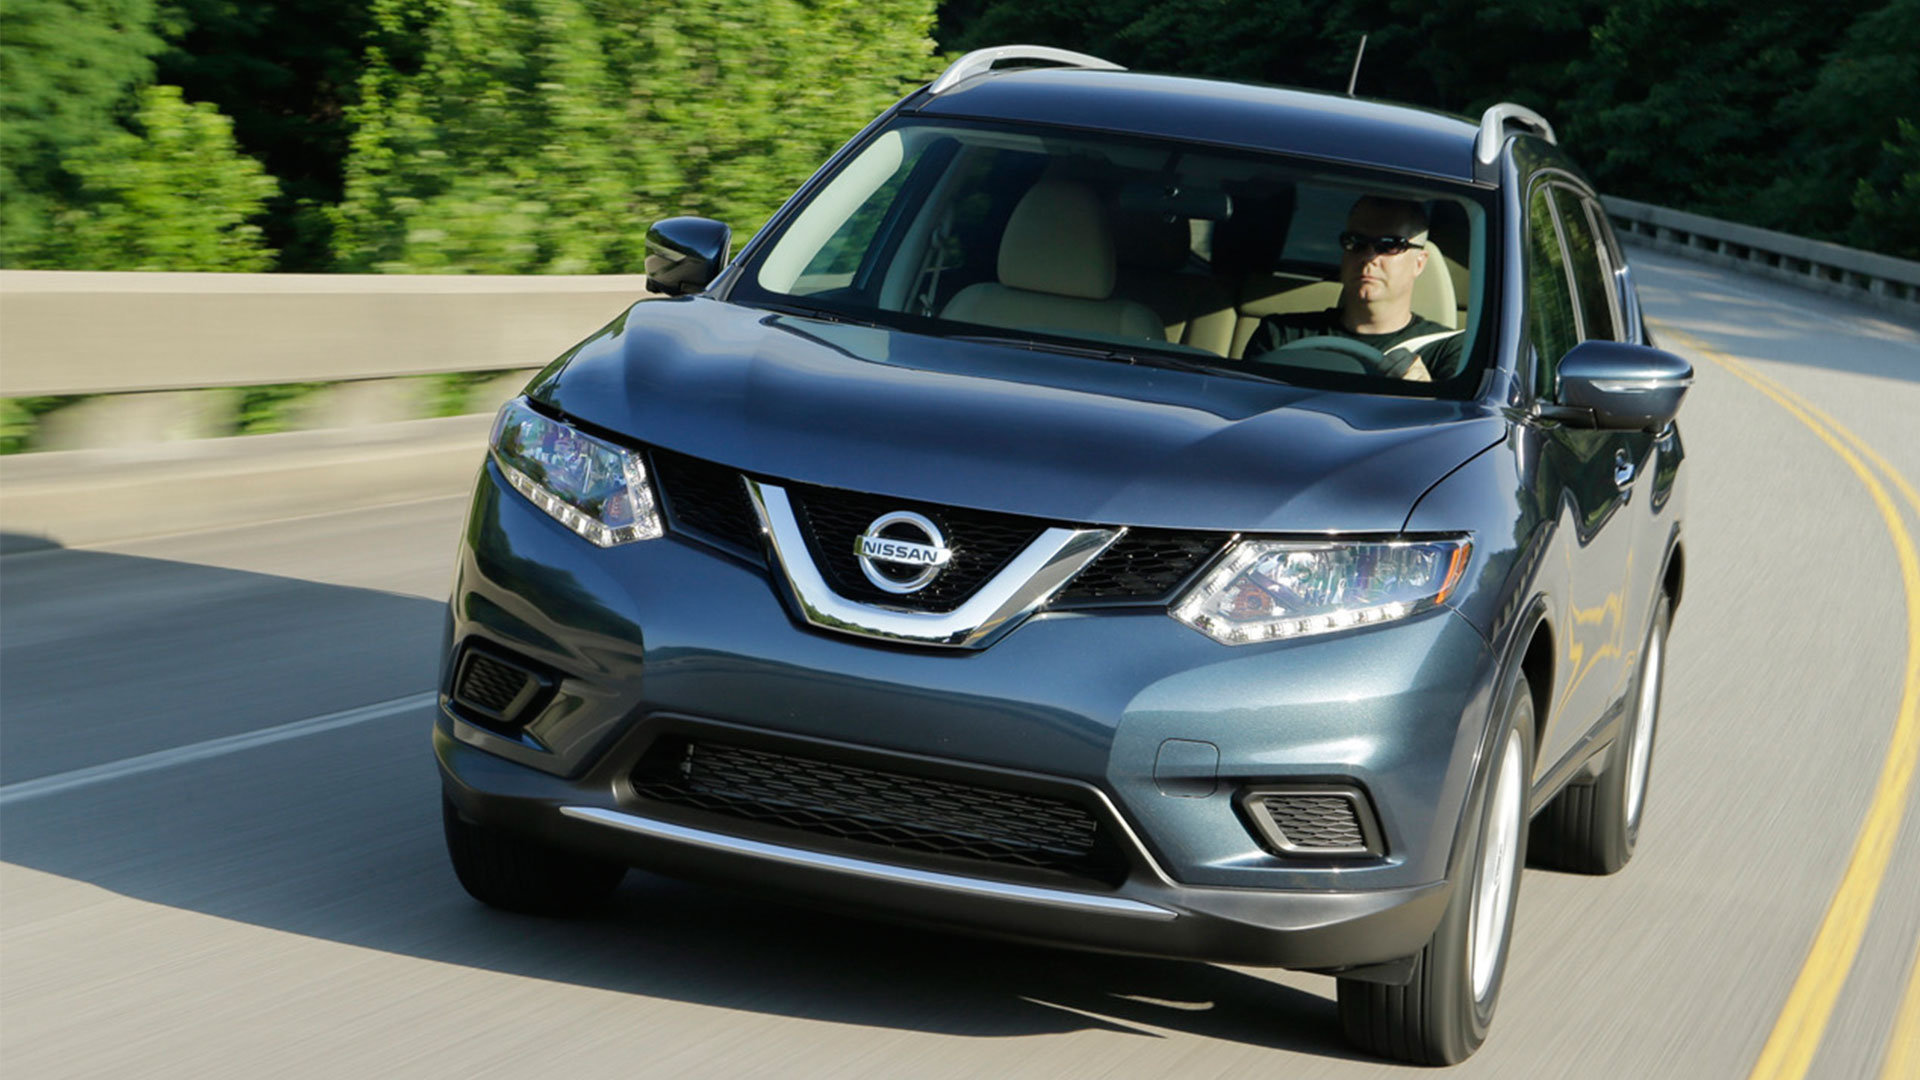 Nissan Rogue arrives in November starting image hosting free Wallpaper